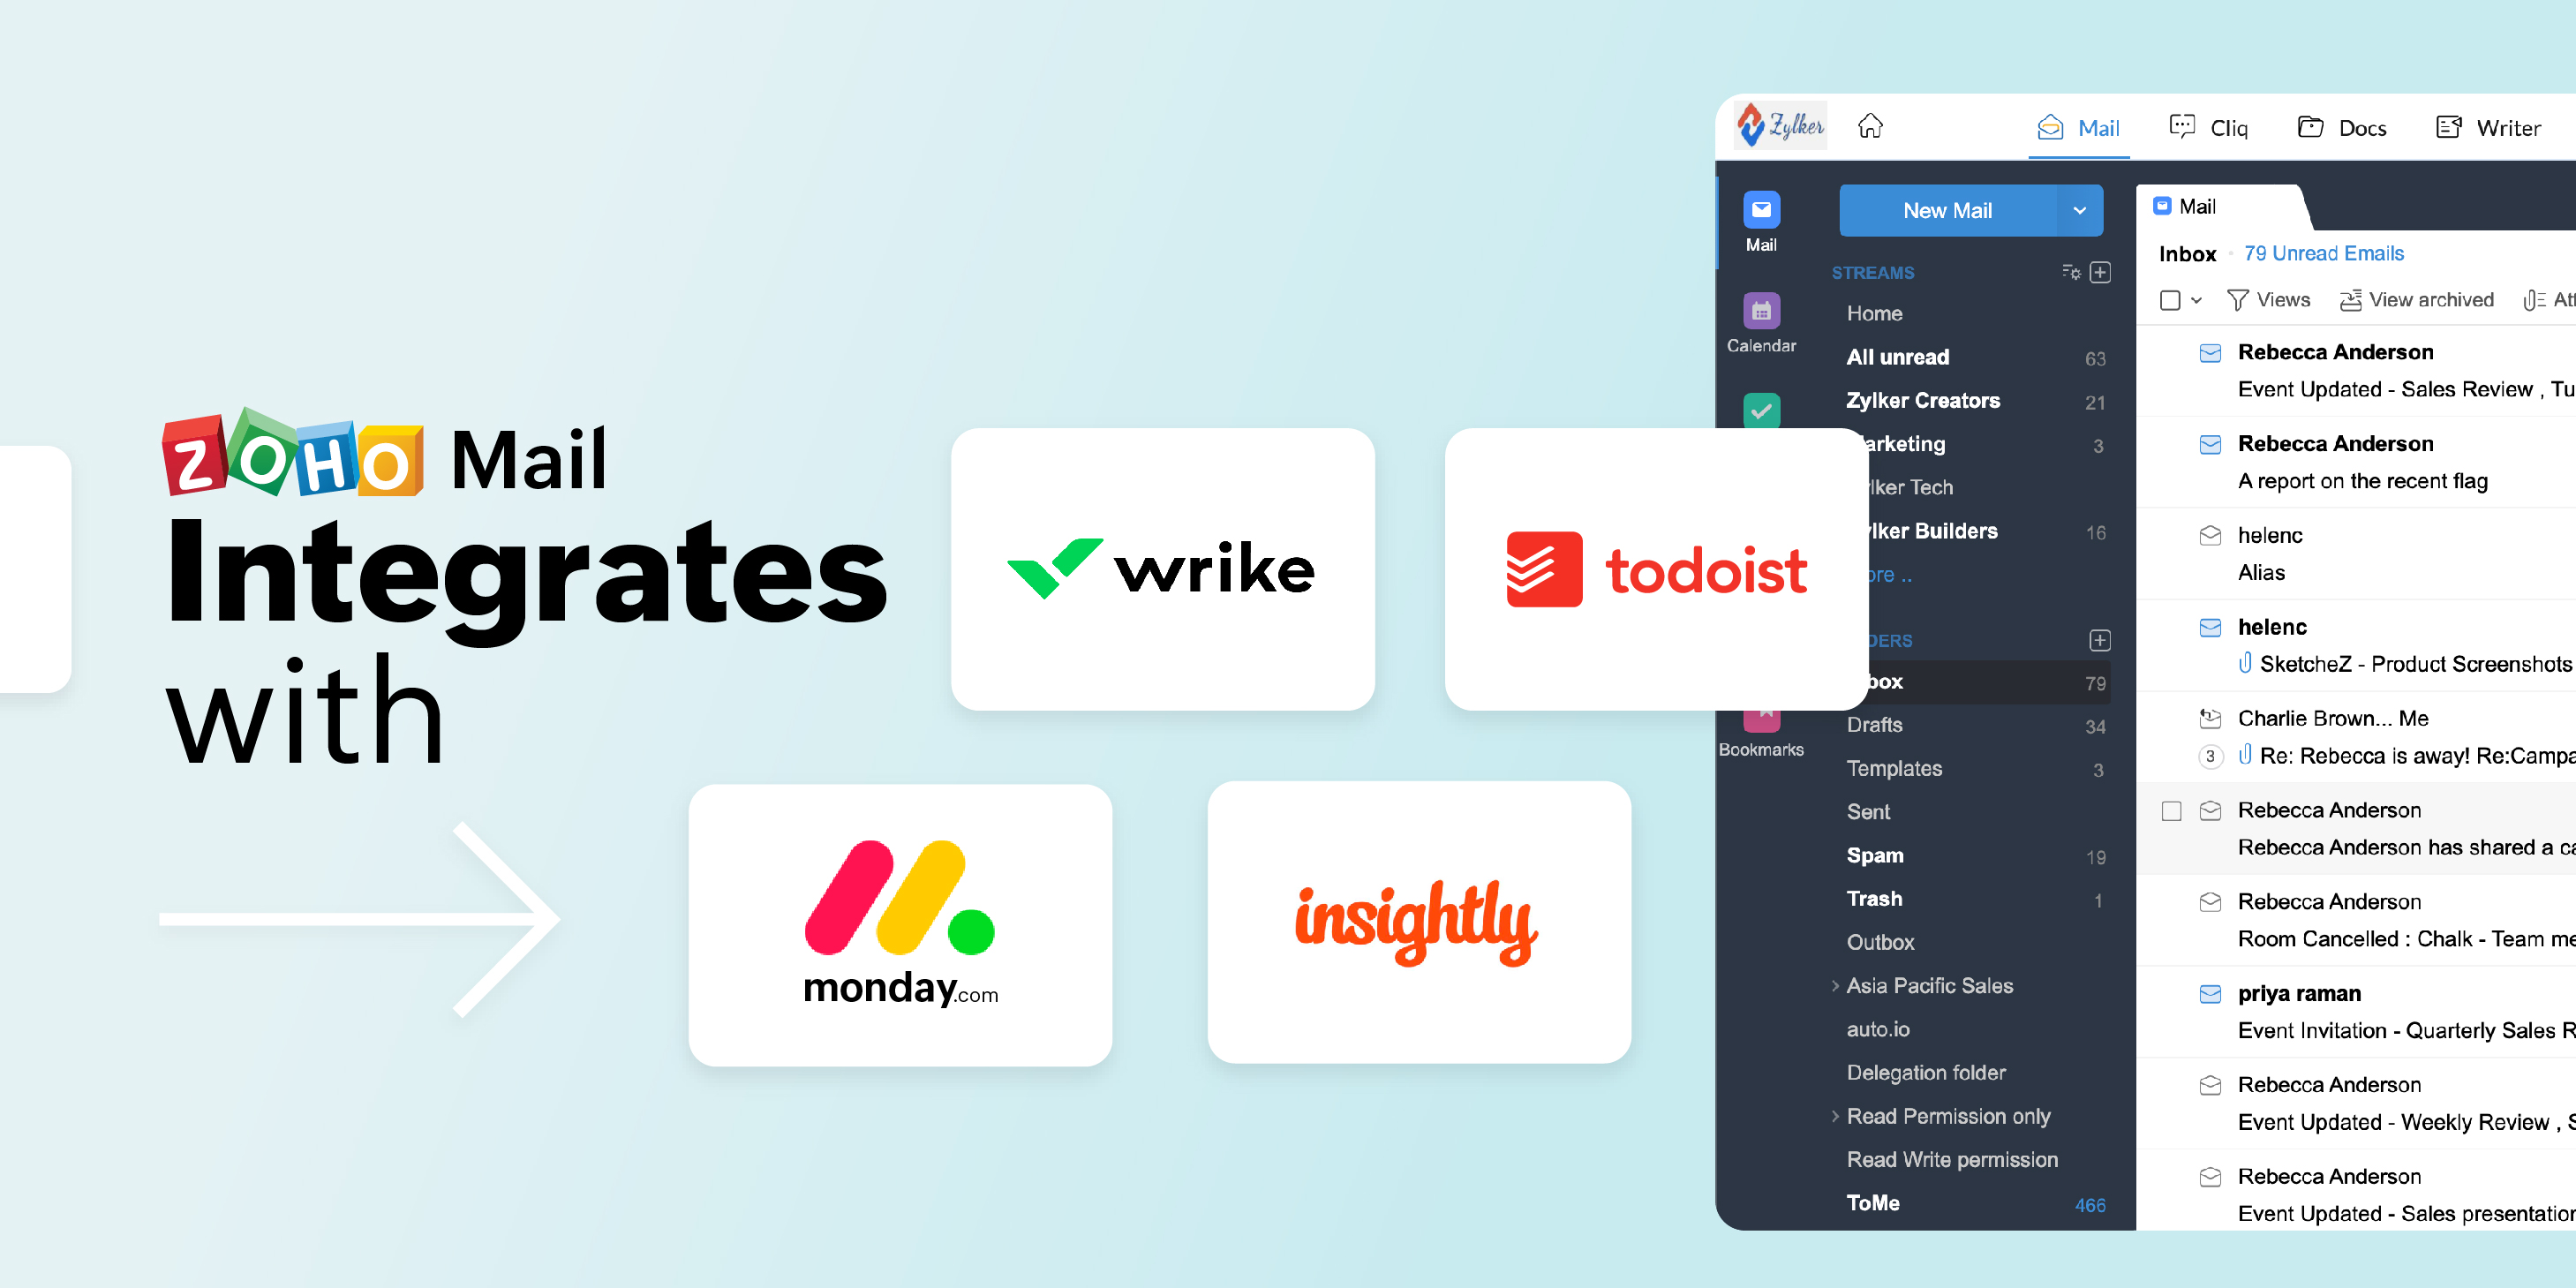 Zoho Mail integrates with Todoist, Wrike, Monday.com, and Insightly CRM